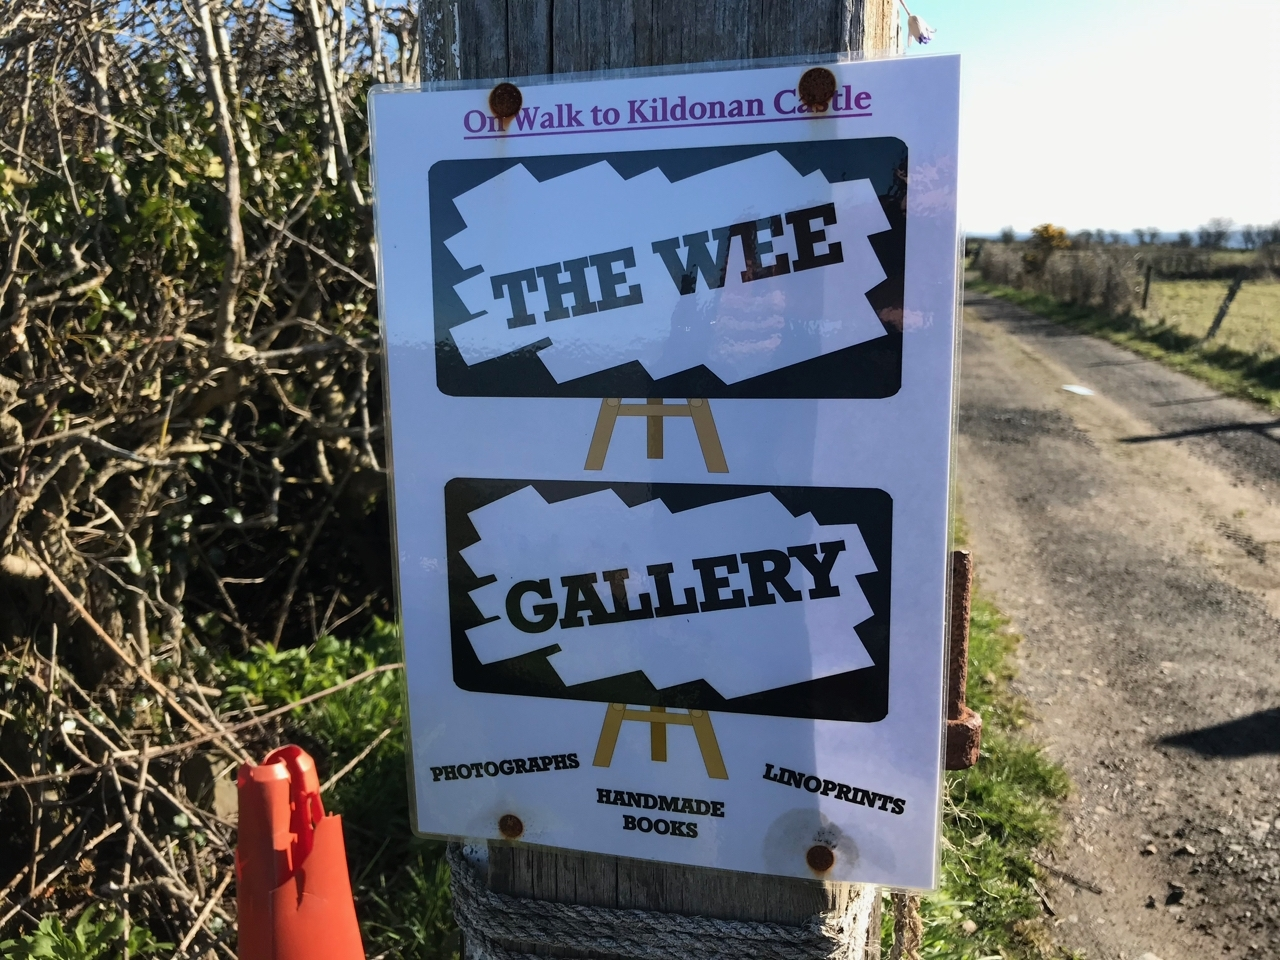 The Wee Gallery